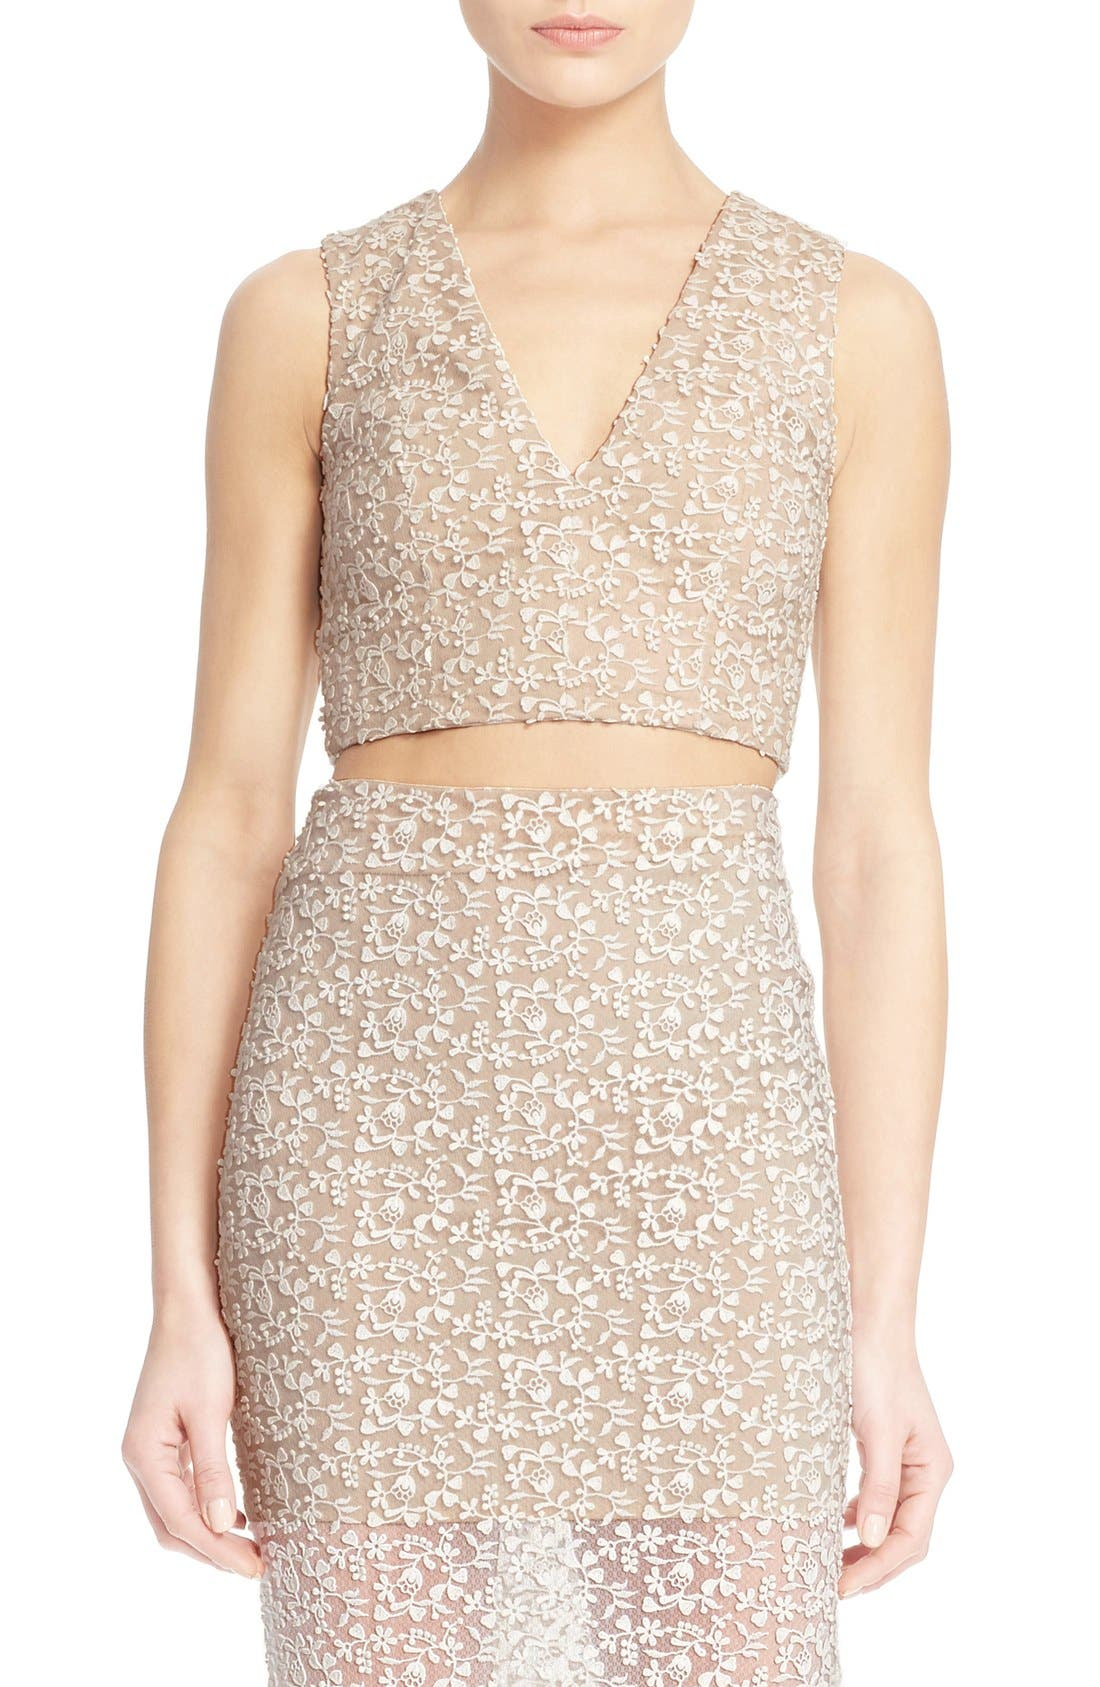 Alternate Image 1 Selected - Alice + Olivia 'Jaya' Illusion Lace V-Neck Crop Top